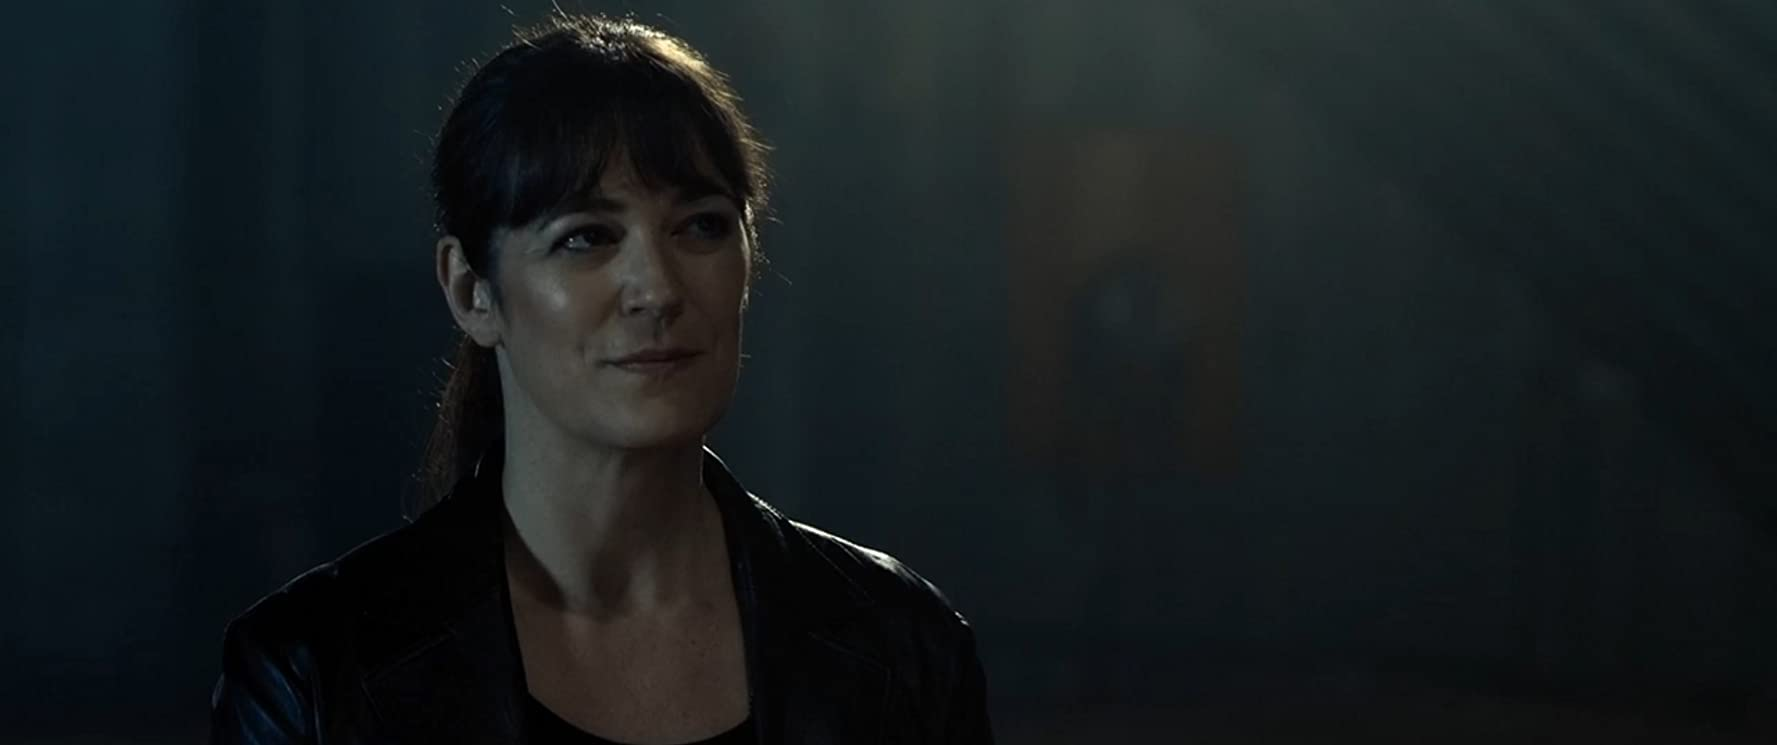 Lisa Houle in Ejecta (2014)